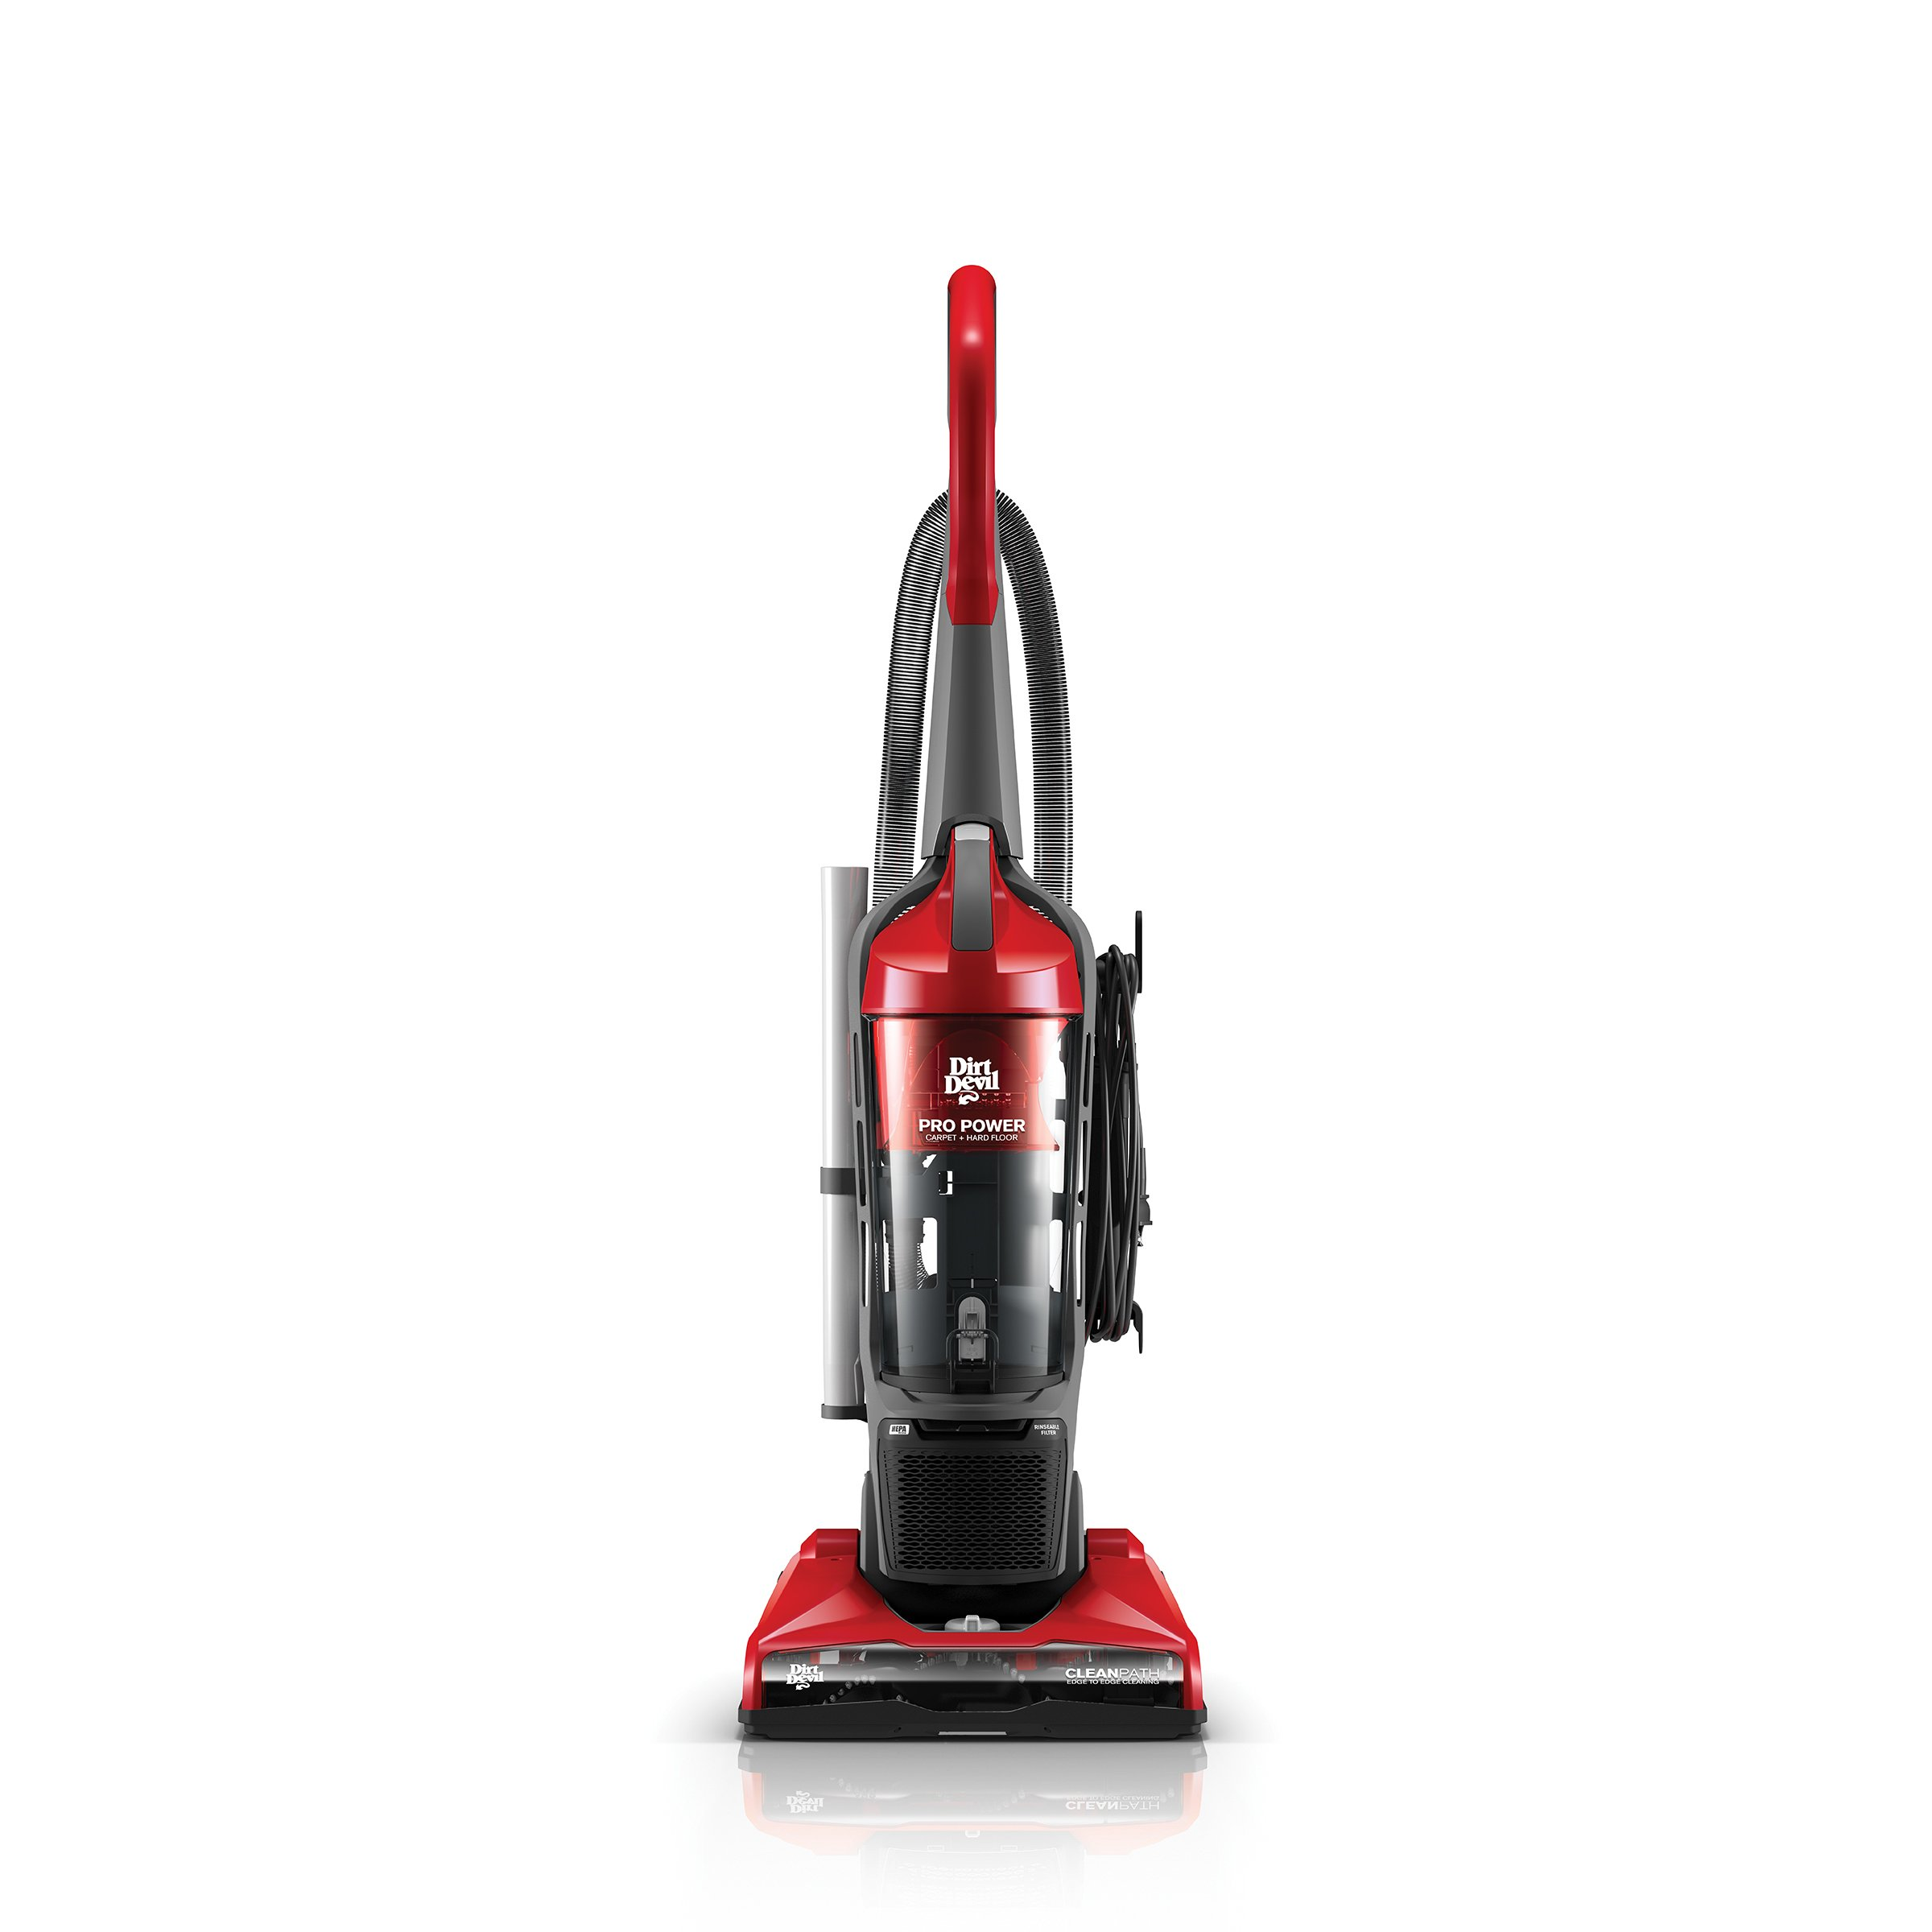 Dirt Devil Vacuum Cleaner Pro Power Bagless Corded Upright Vacuum UD70172